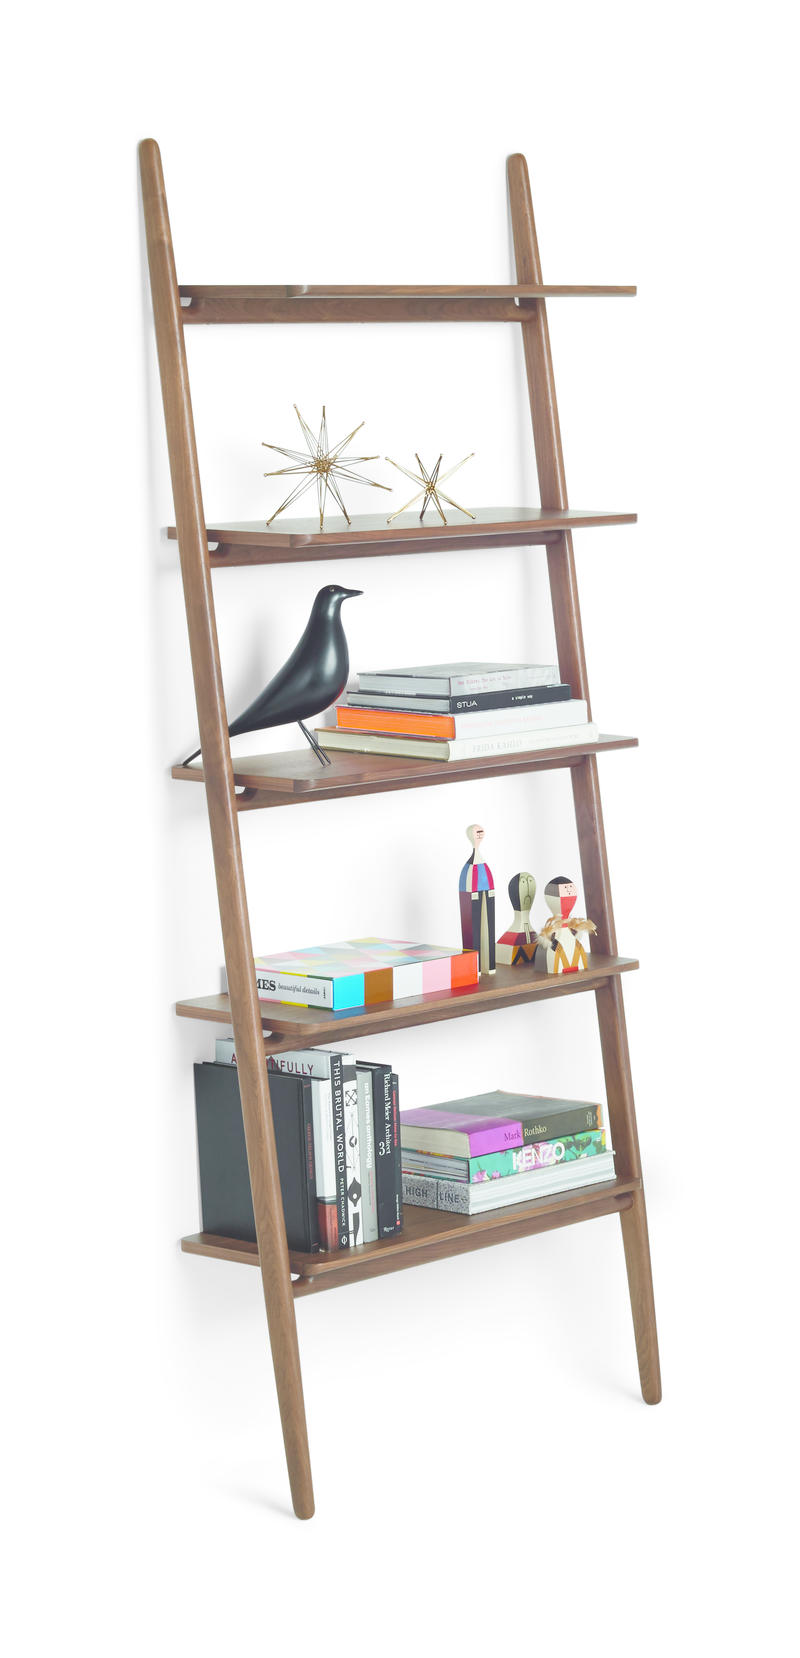 Folk Ladder Shelving is another of DWR's millennial must-haves